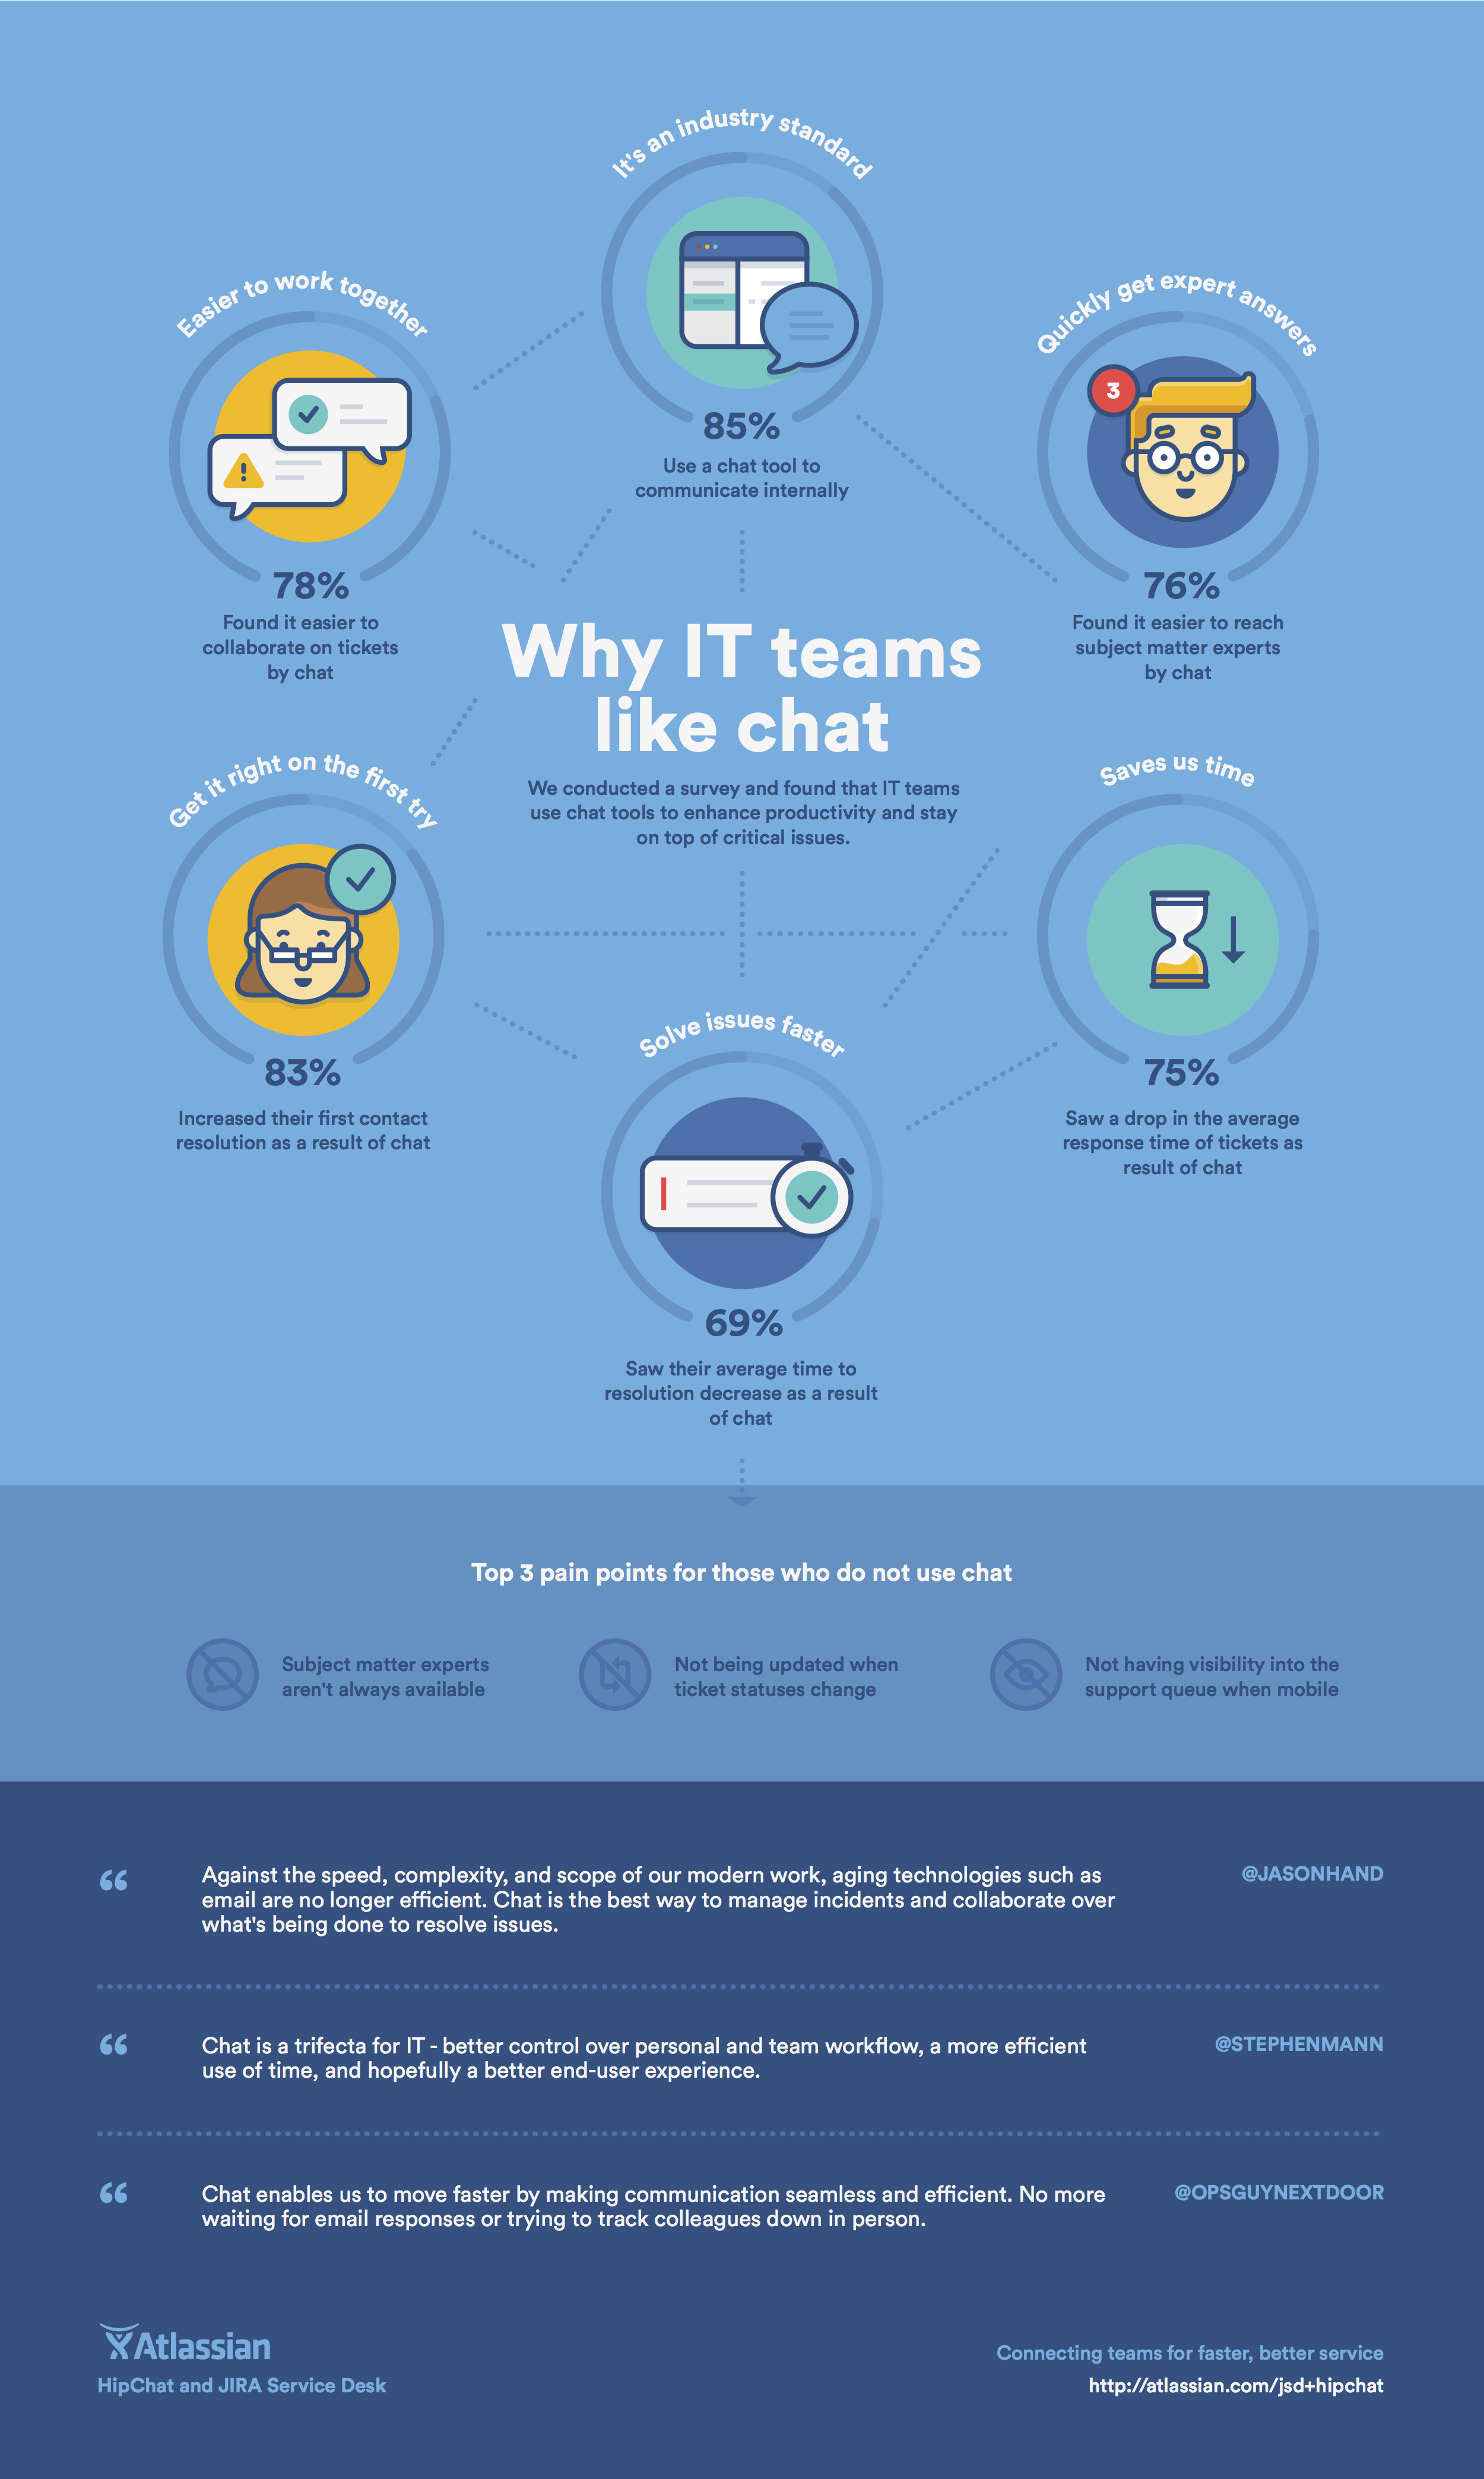 Infographic showing statistics about why IT teams like chat software